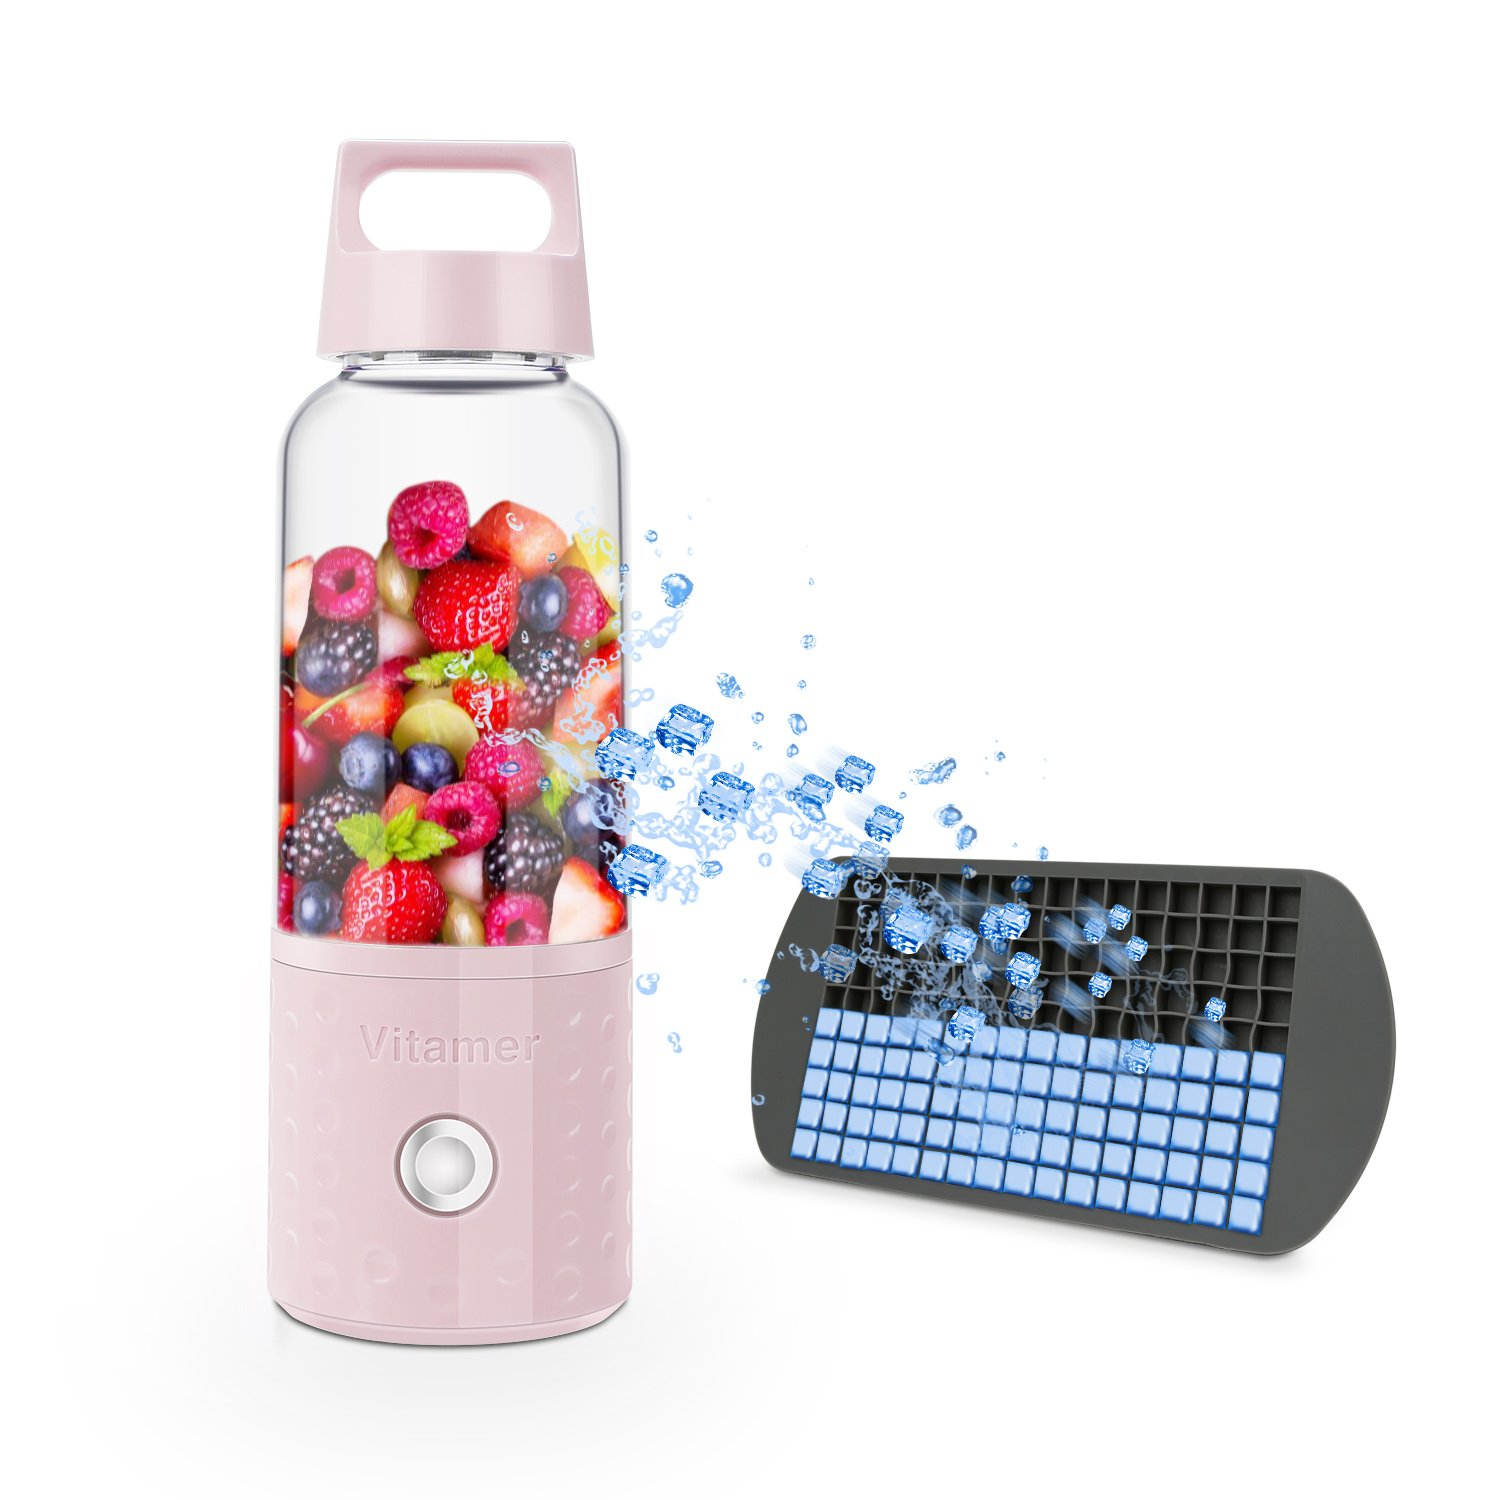 Mini Blender Bottle, BizoeRade Portable Can Be Removable Be Hand Blender, Electric Juicer Cup with Silicone Ice Tray for Fruit Smoothie Baby Food Picnic, USB Rechargeable (Pink)